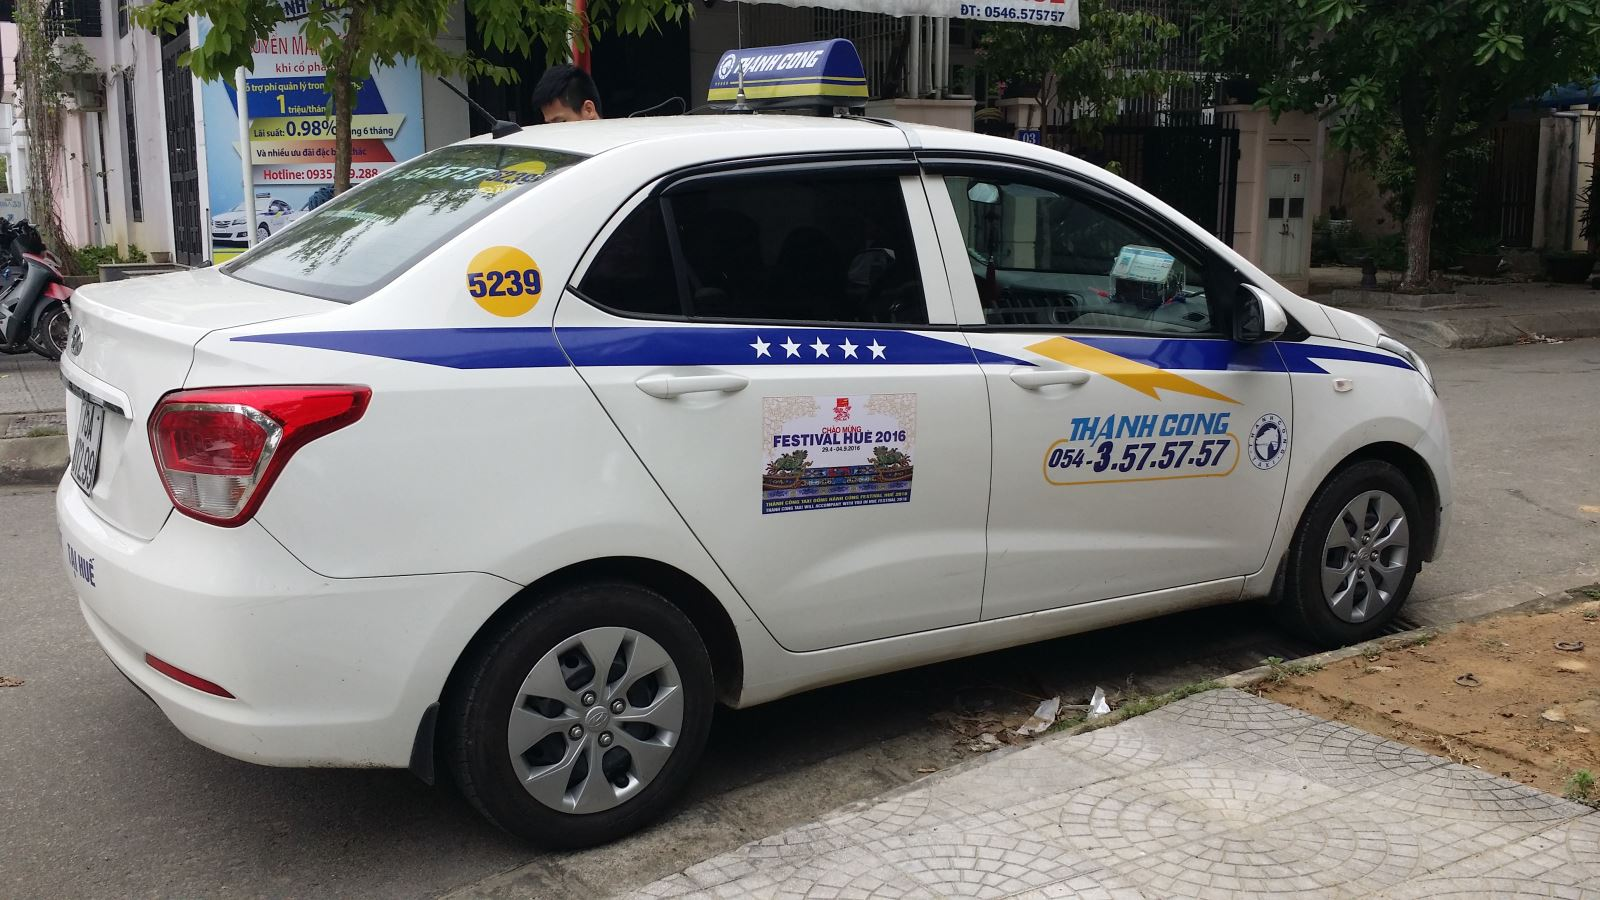 Thanh Cong taxi- one of the cheap taxis in Hanoi